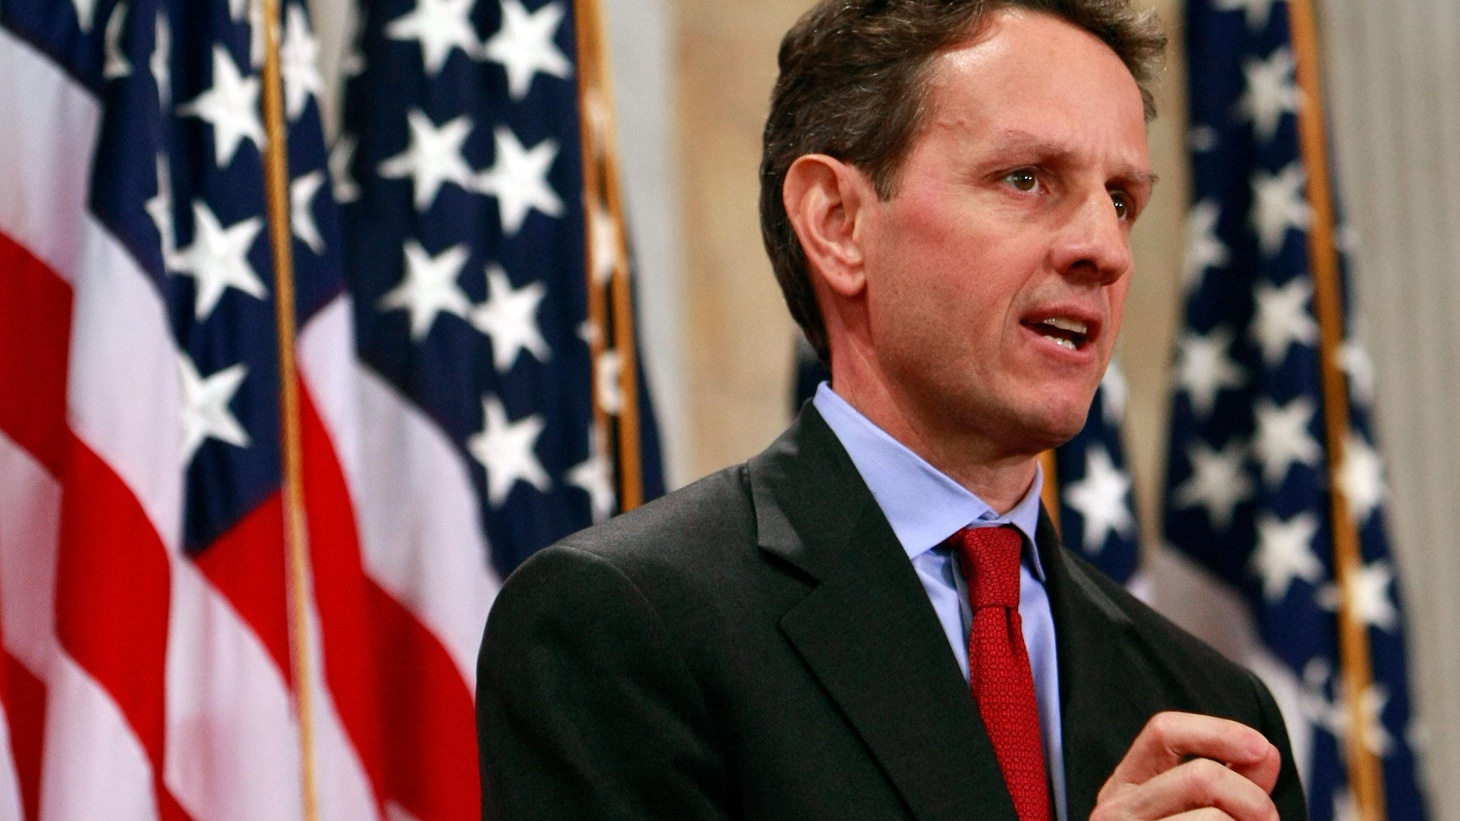 George W. Bush spent $350 billion to rescue financial institutions. Barack Obama wants $1.5 trillion. We hear how Treasury Secretary Tim Geithner describes the program and the promise of accountability and transparency. Also, the President takes his stimulus pitch to Florida and, just like Bush, Obama invokes state secrets in a case of extraordinary rendition.